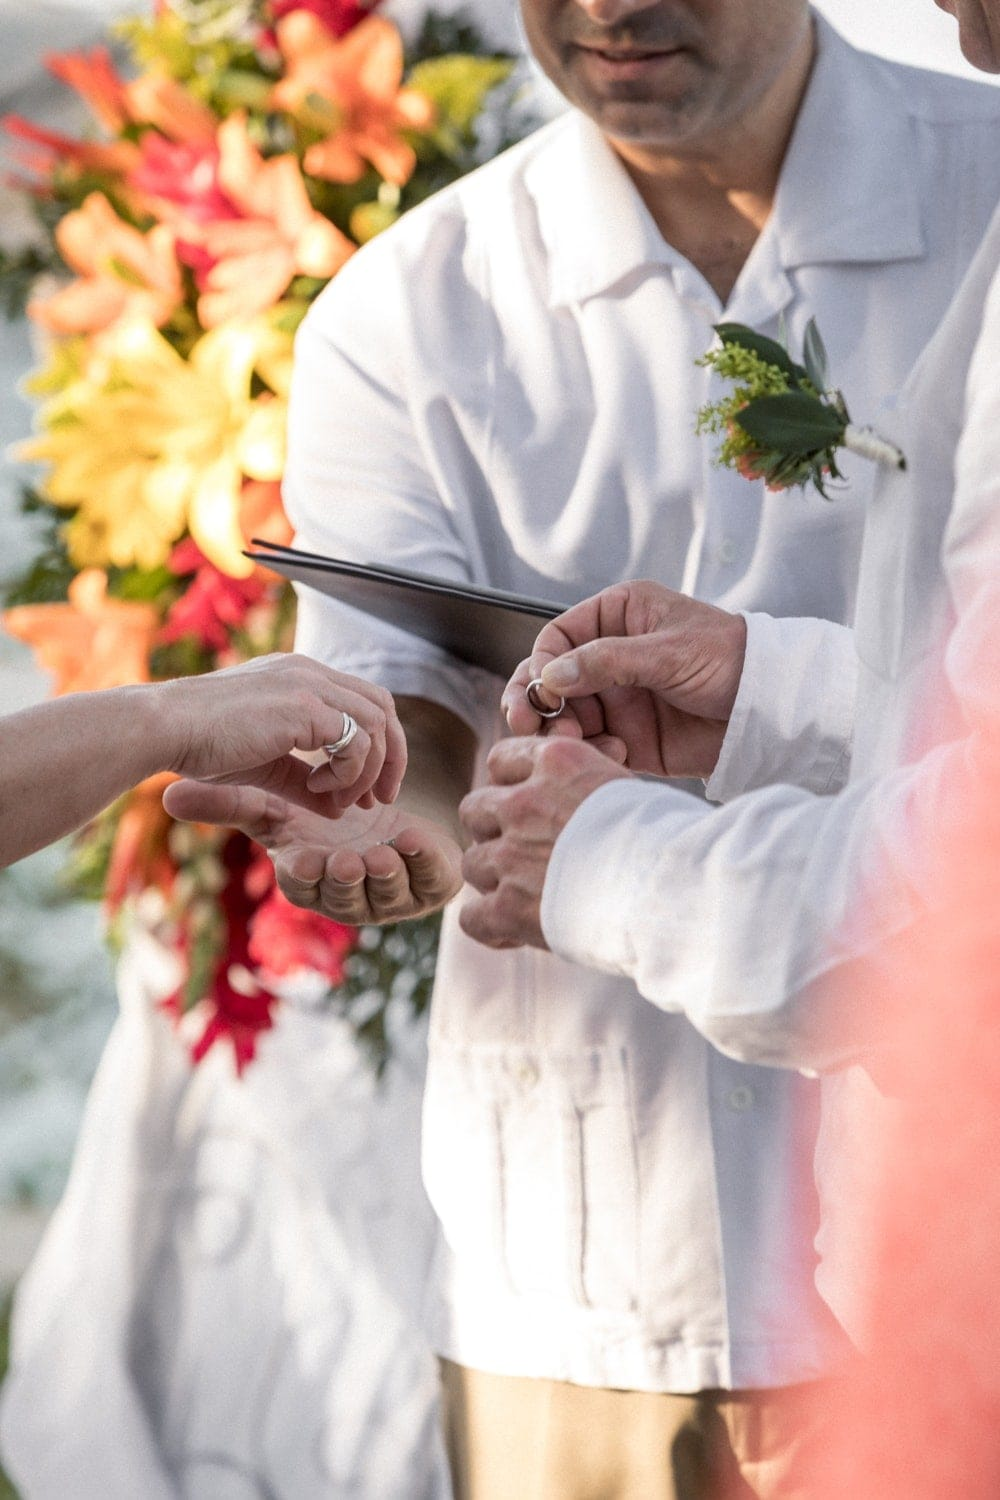 Exchanging or wedding bands during ceremony in Costa Rica.